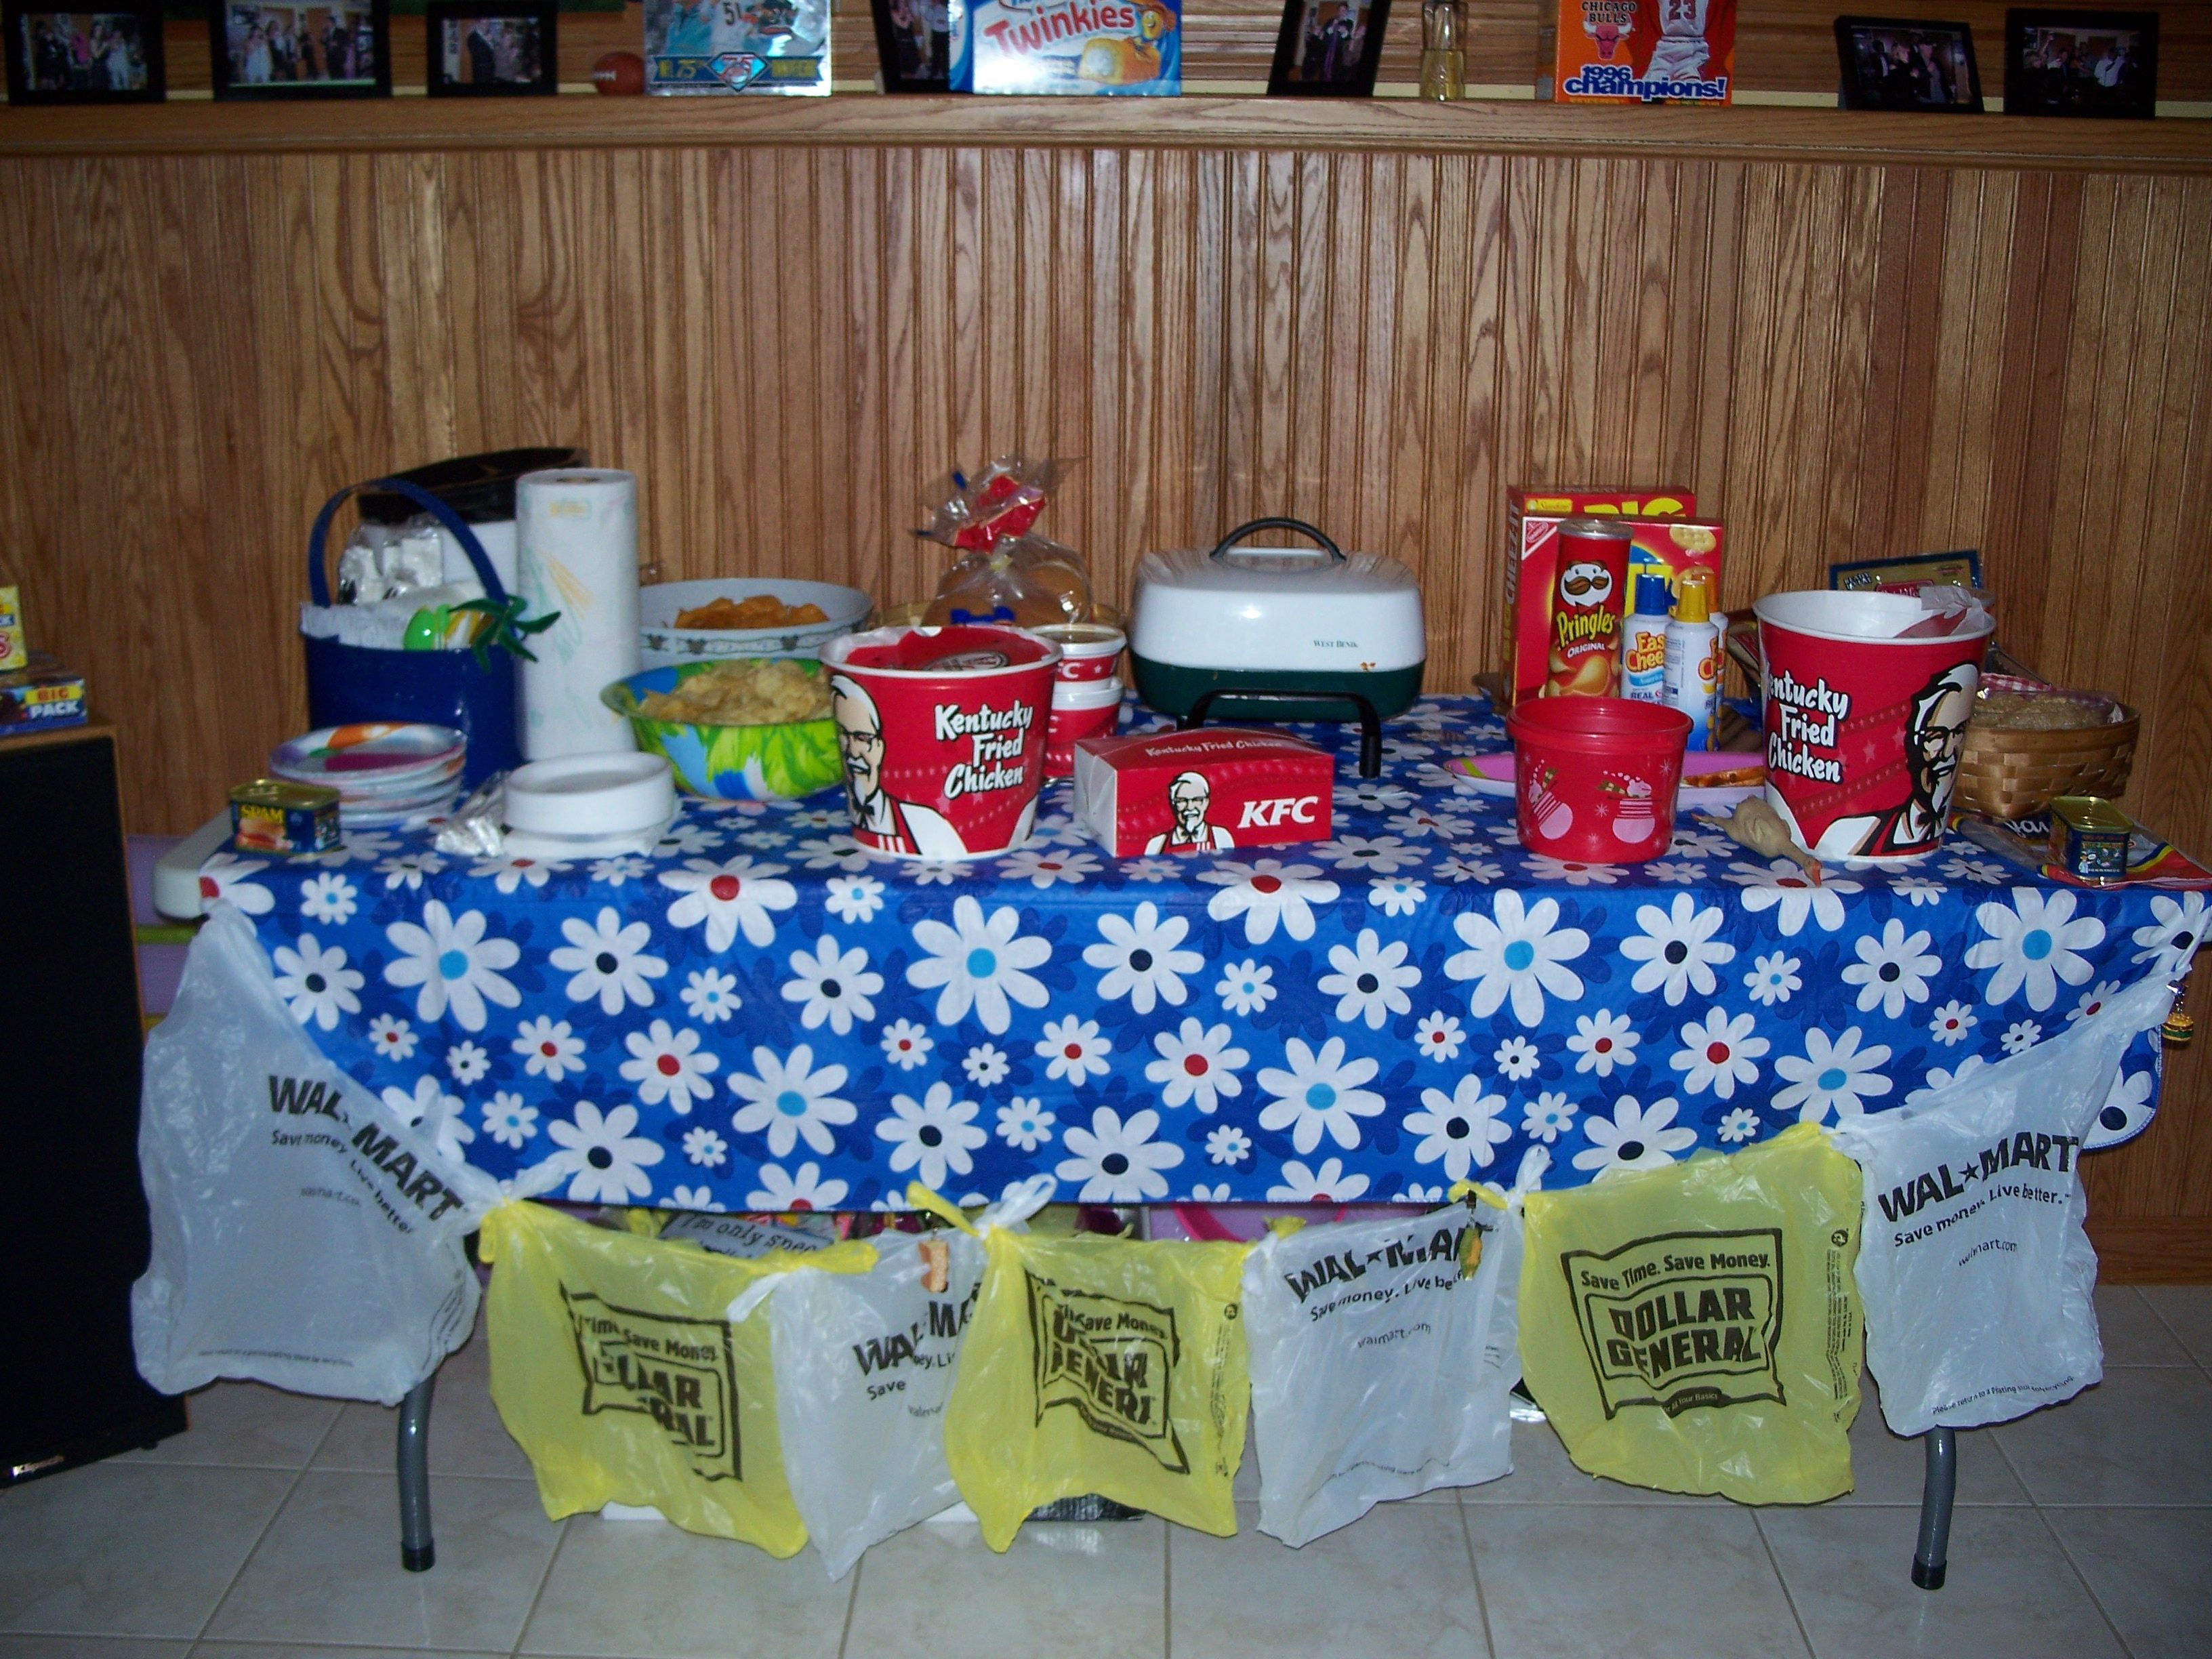 Charming Redneck Christmas Party Ideas Part - 13: White Trash Party - Sloppy Joes, KFC, Beef Jerkey, Twinkees, Pigs In